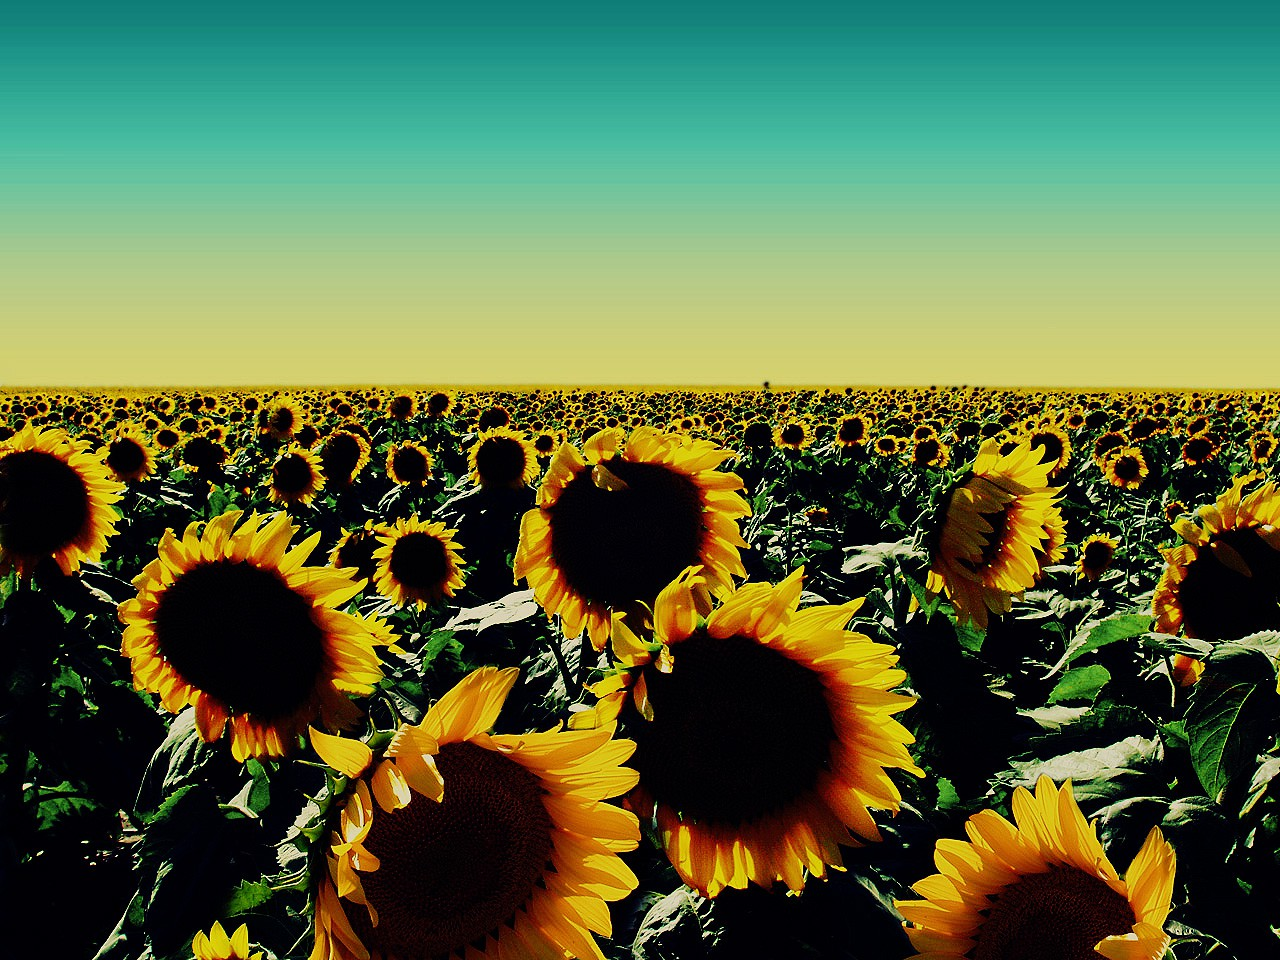 cropped-sunflowers-drawing-tumblr-wallpaper-all-hd-images-be-wallpaper.jpg